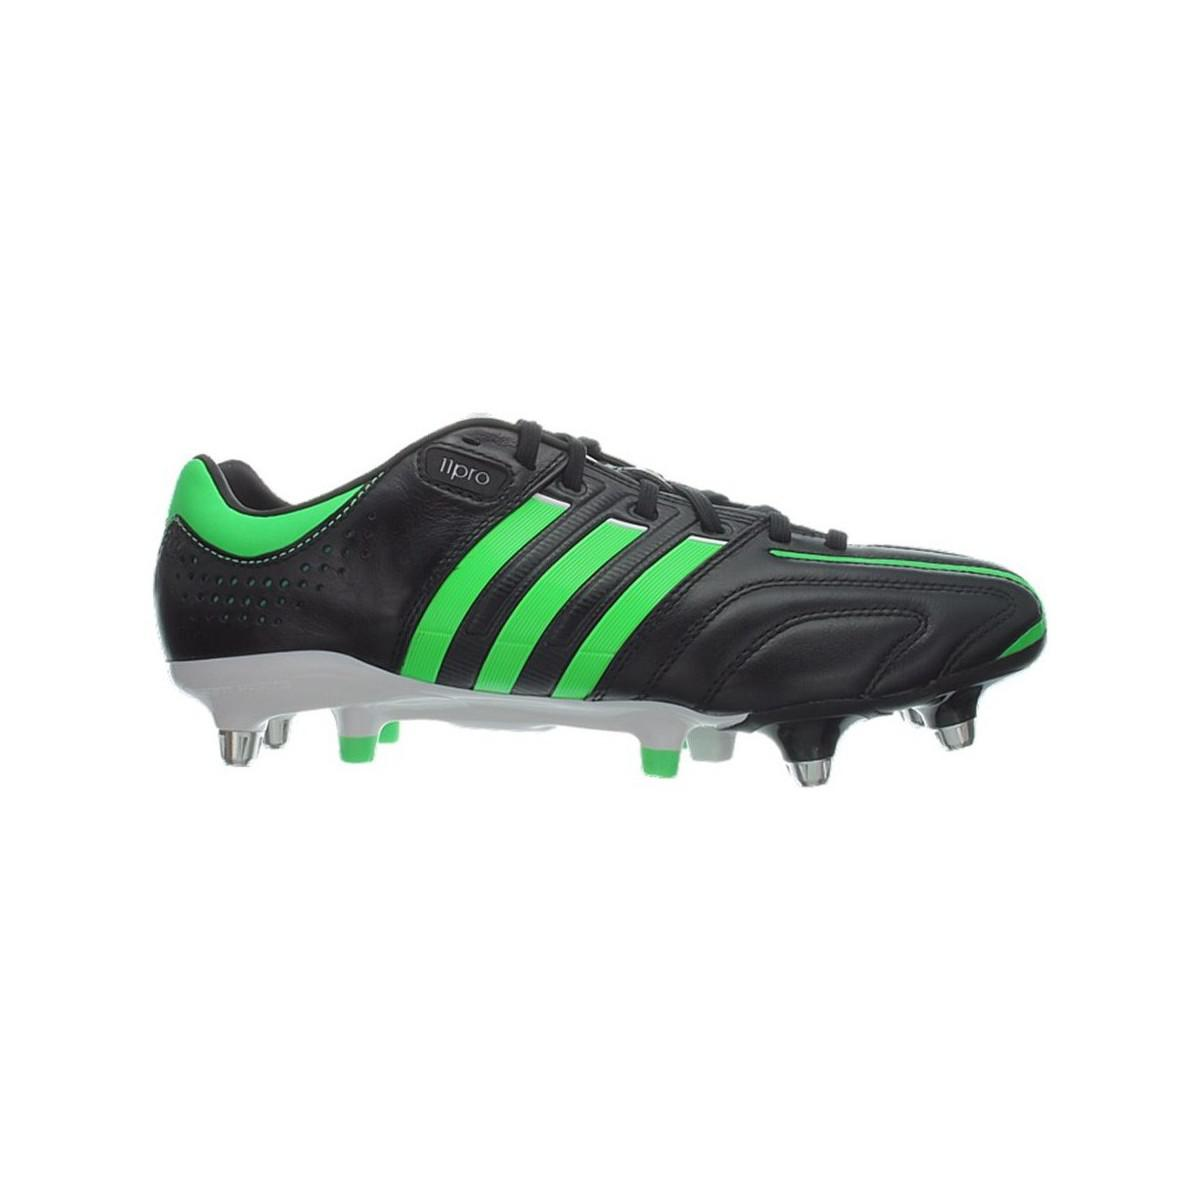 adidas Adipure 11pro Xtrx Sg Men's Football Boots In Green